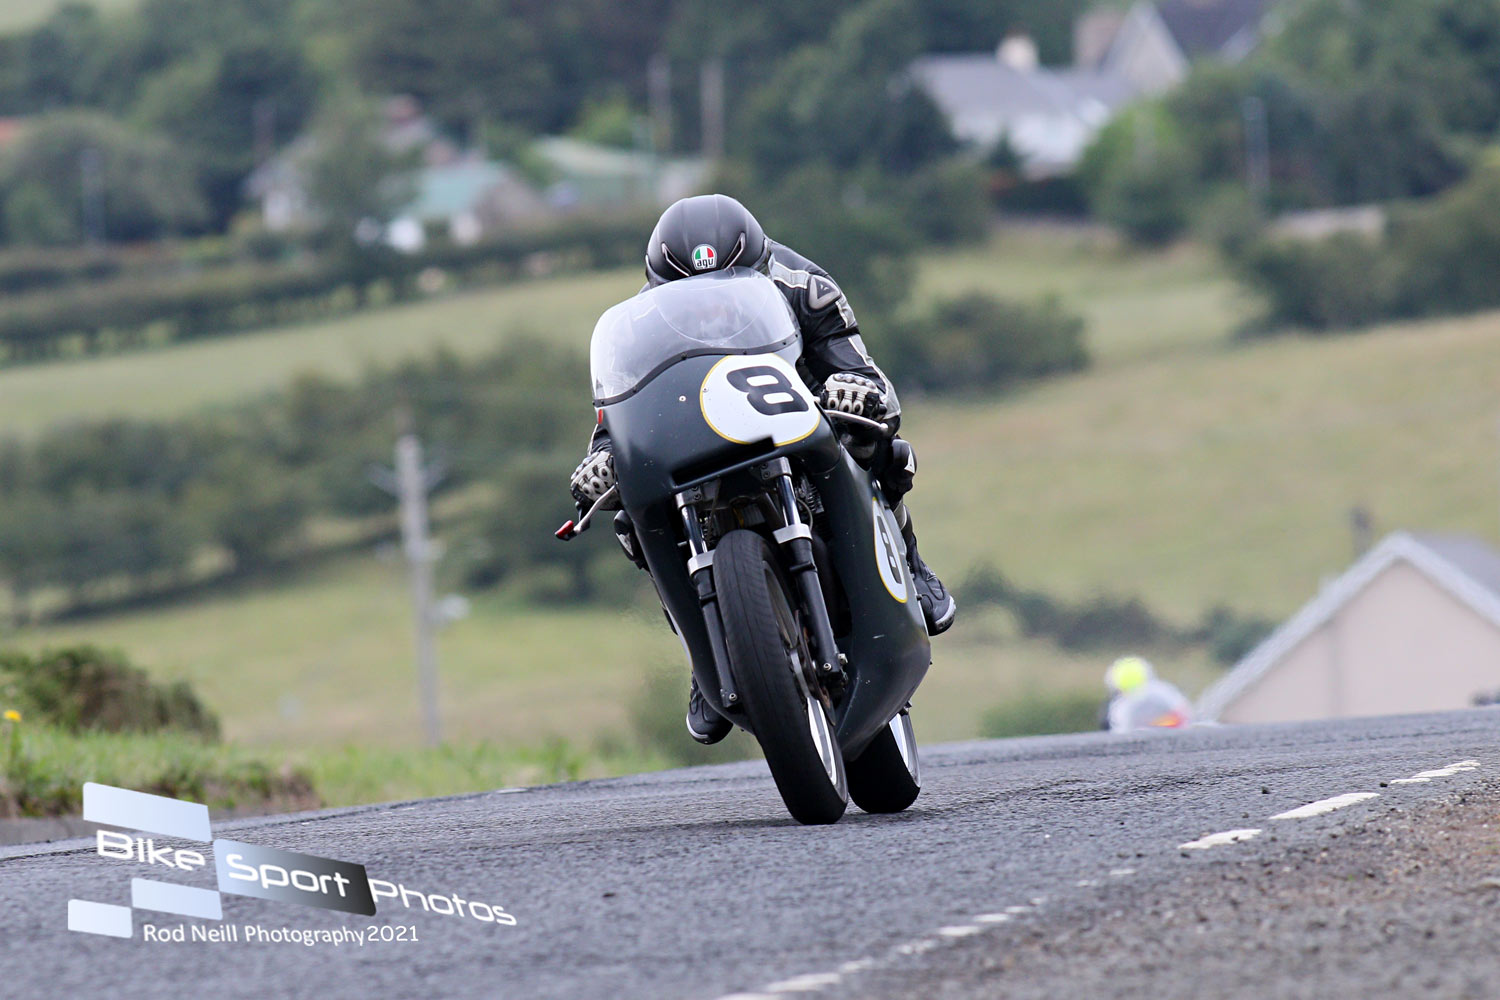 Armoy: Race Day Wrap Up